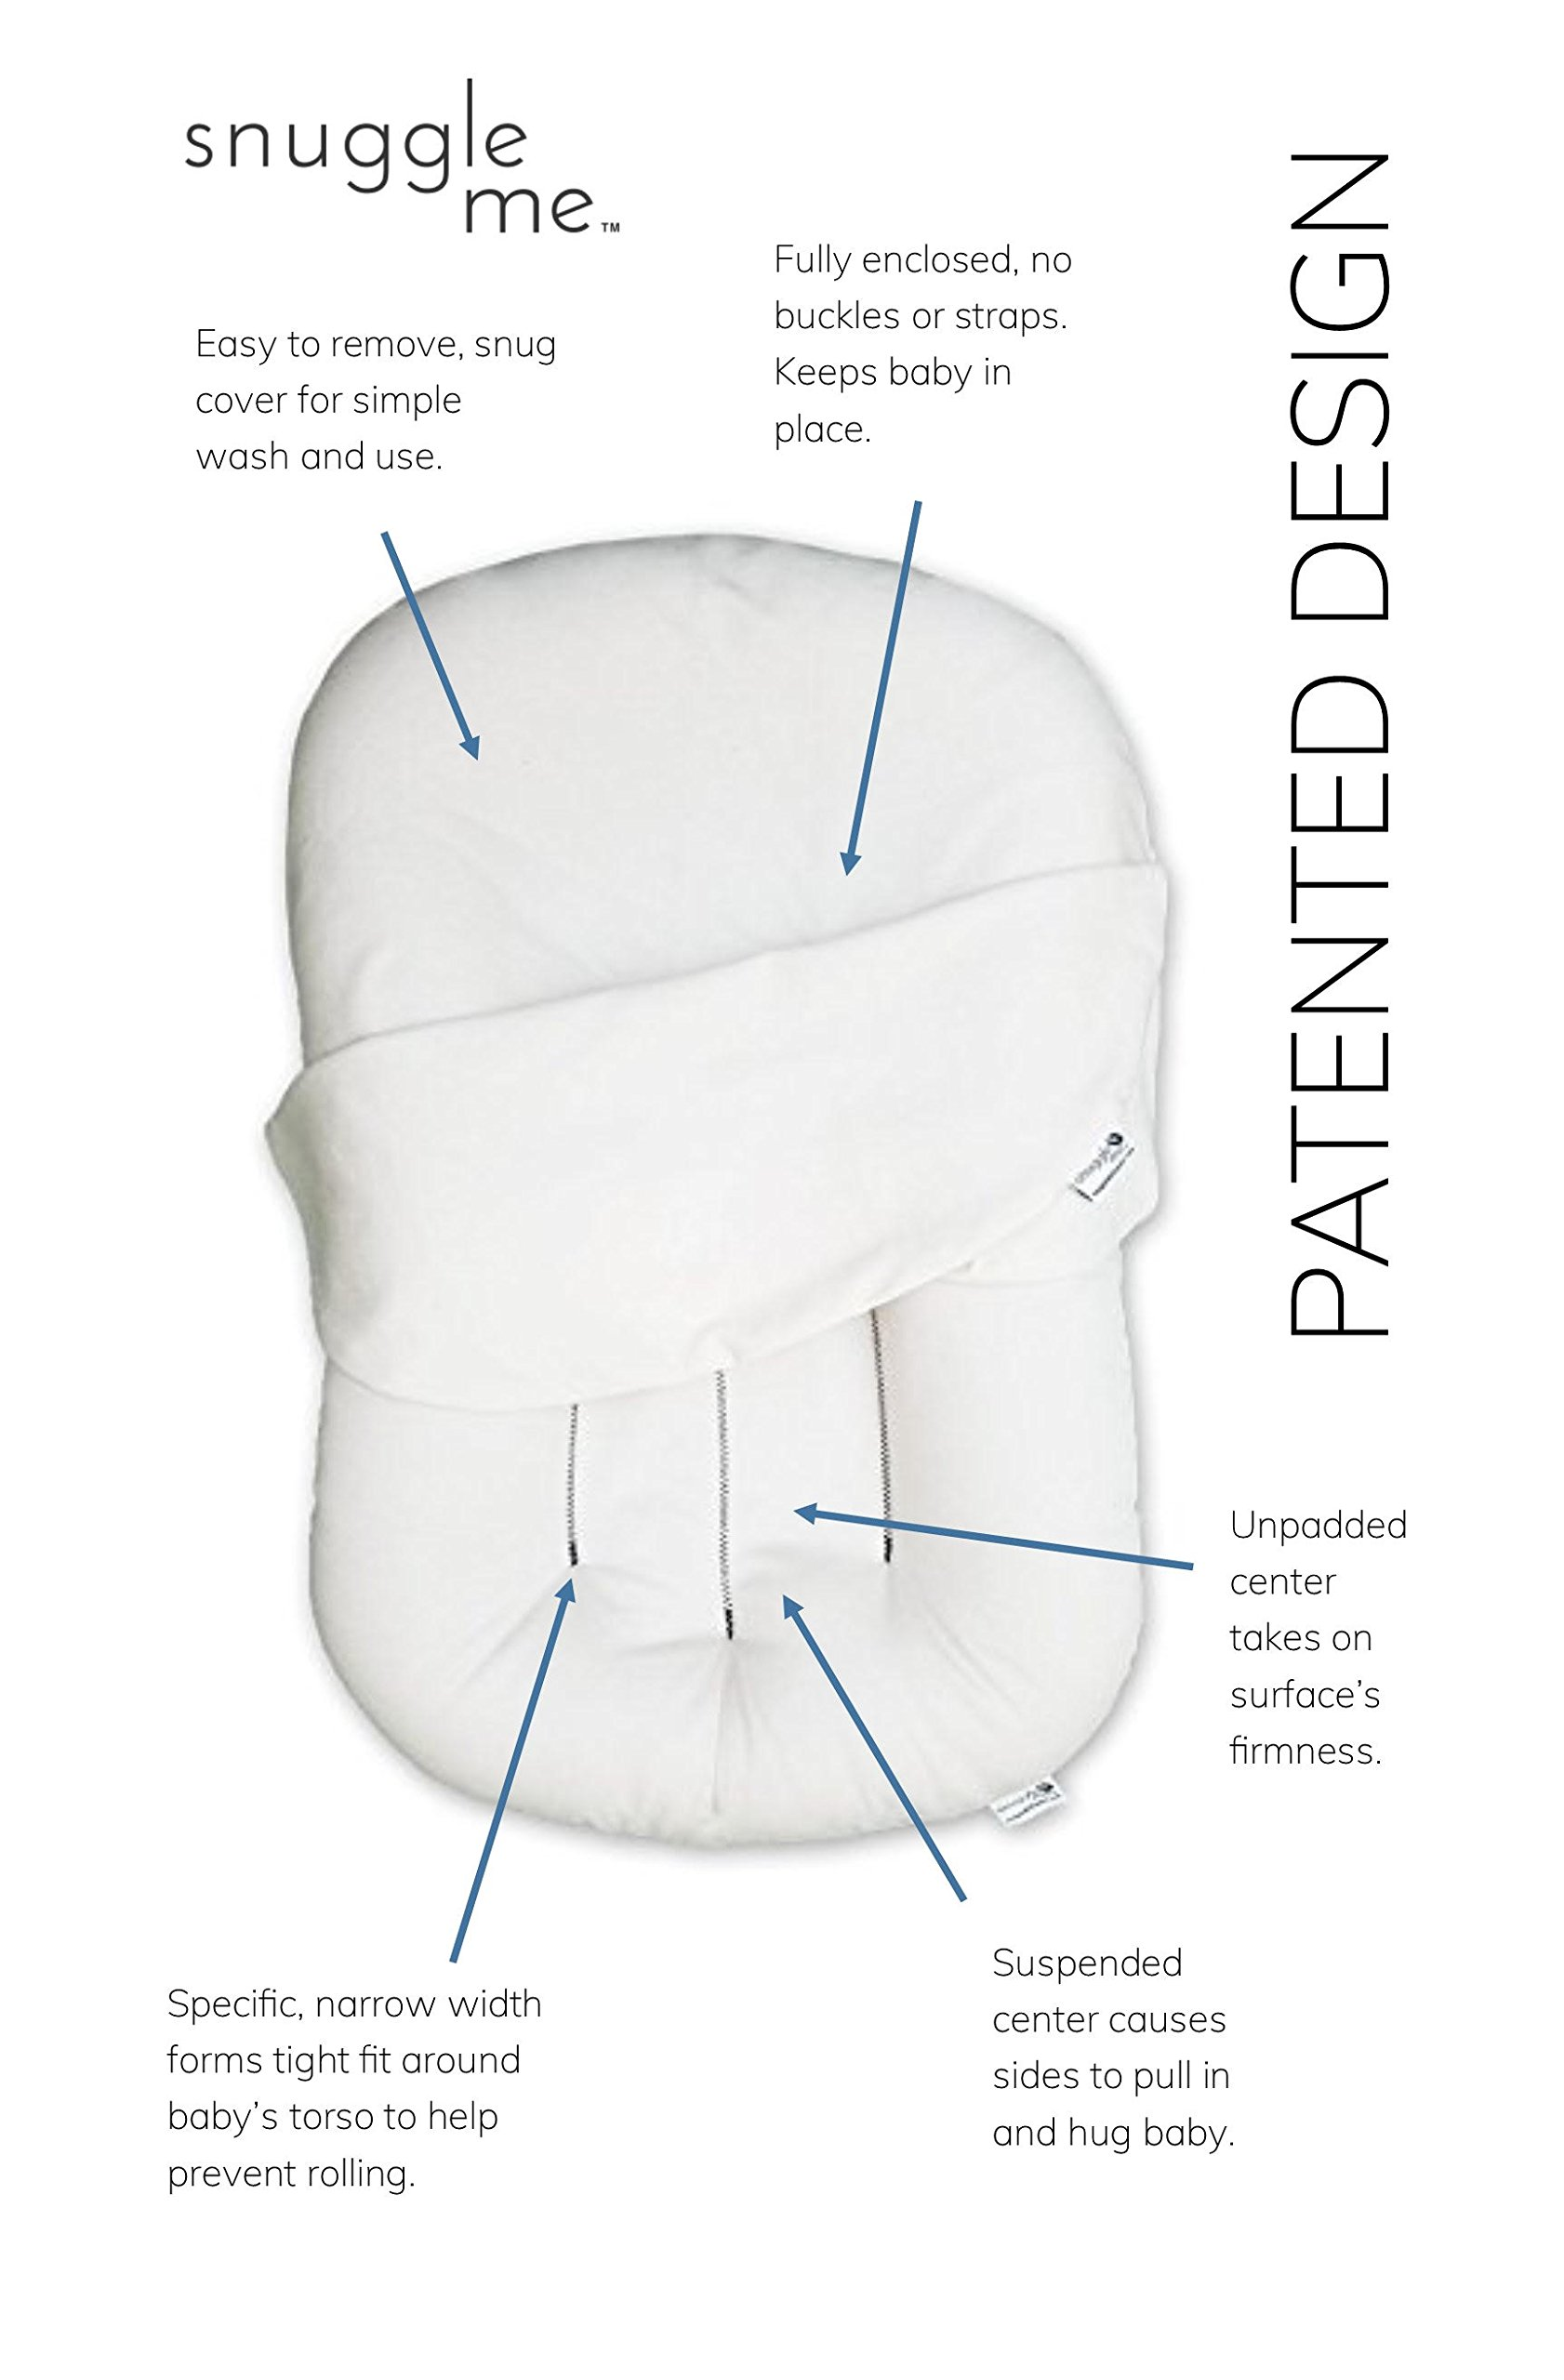 Image of the Snuggle Me Organic | Patented Sensory Lounger for Baby | organic cotton, virgin polyester fill